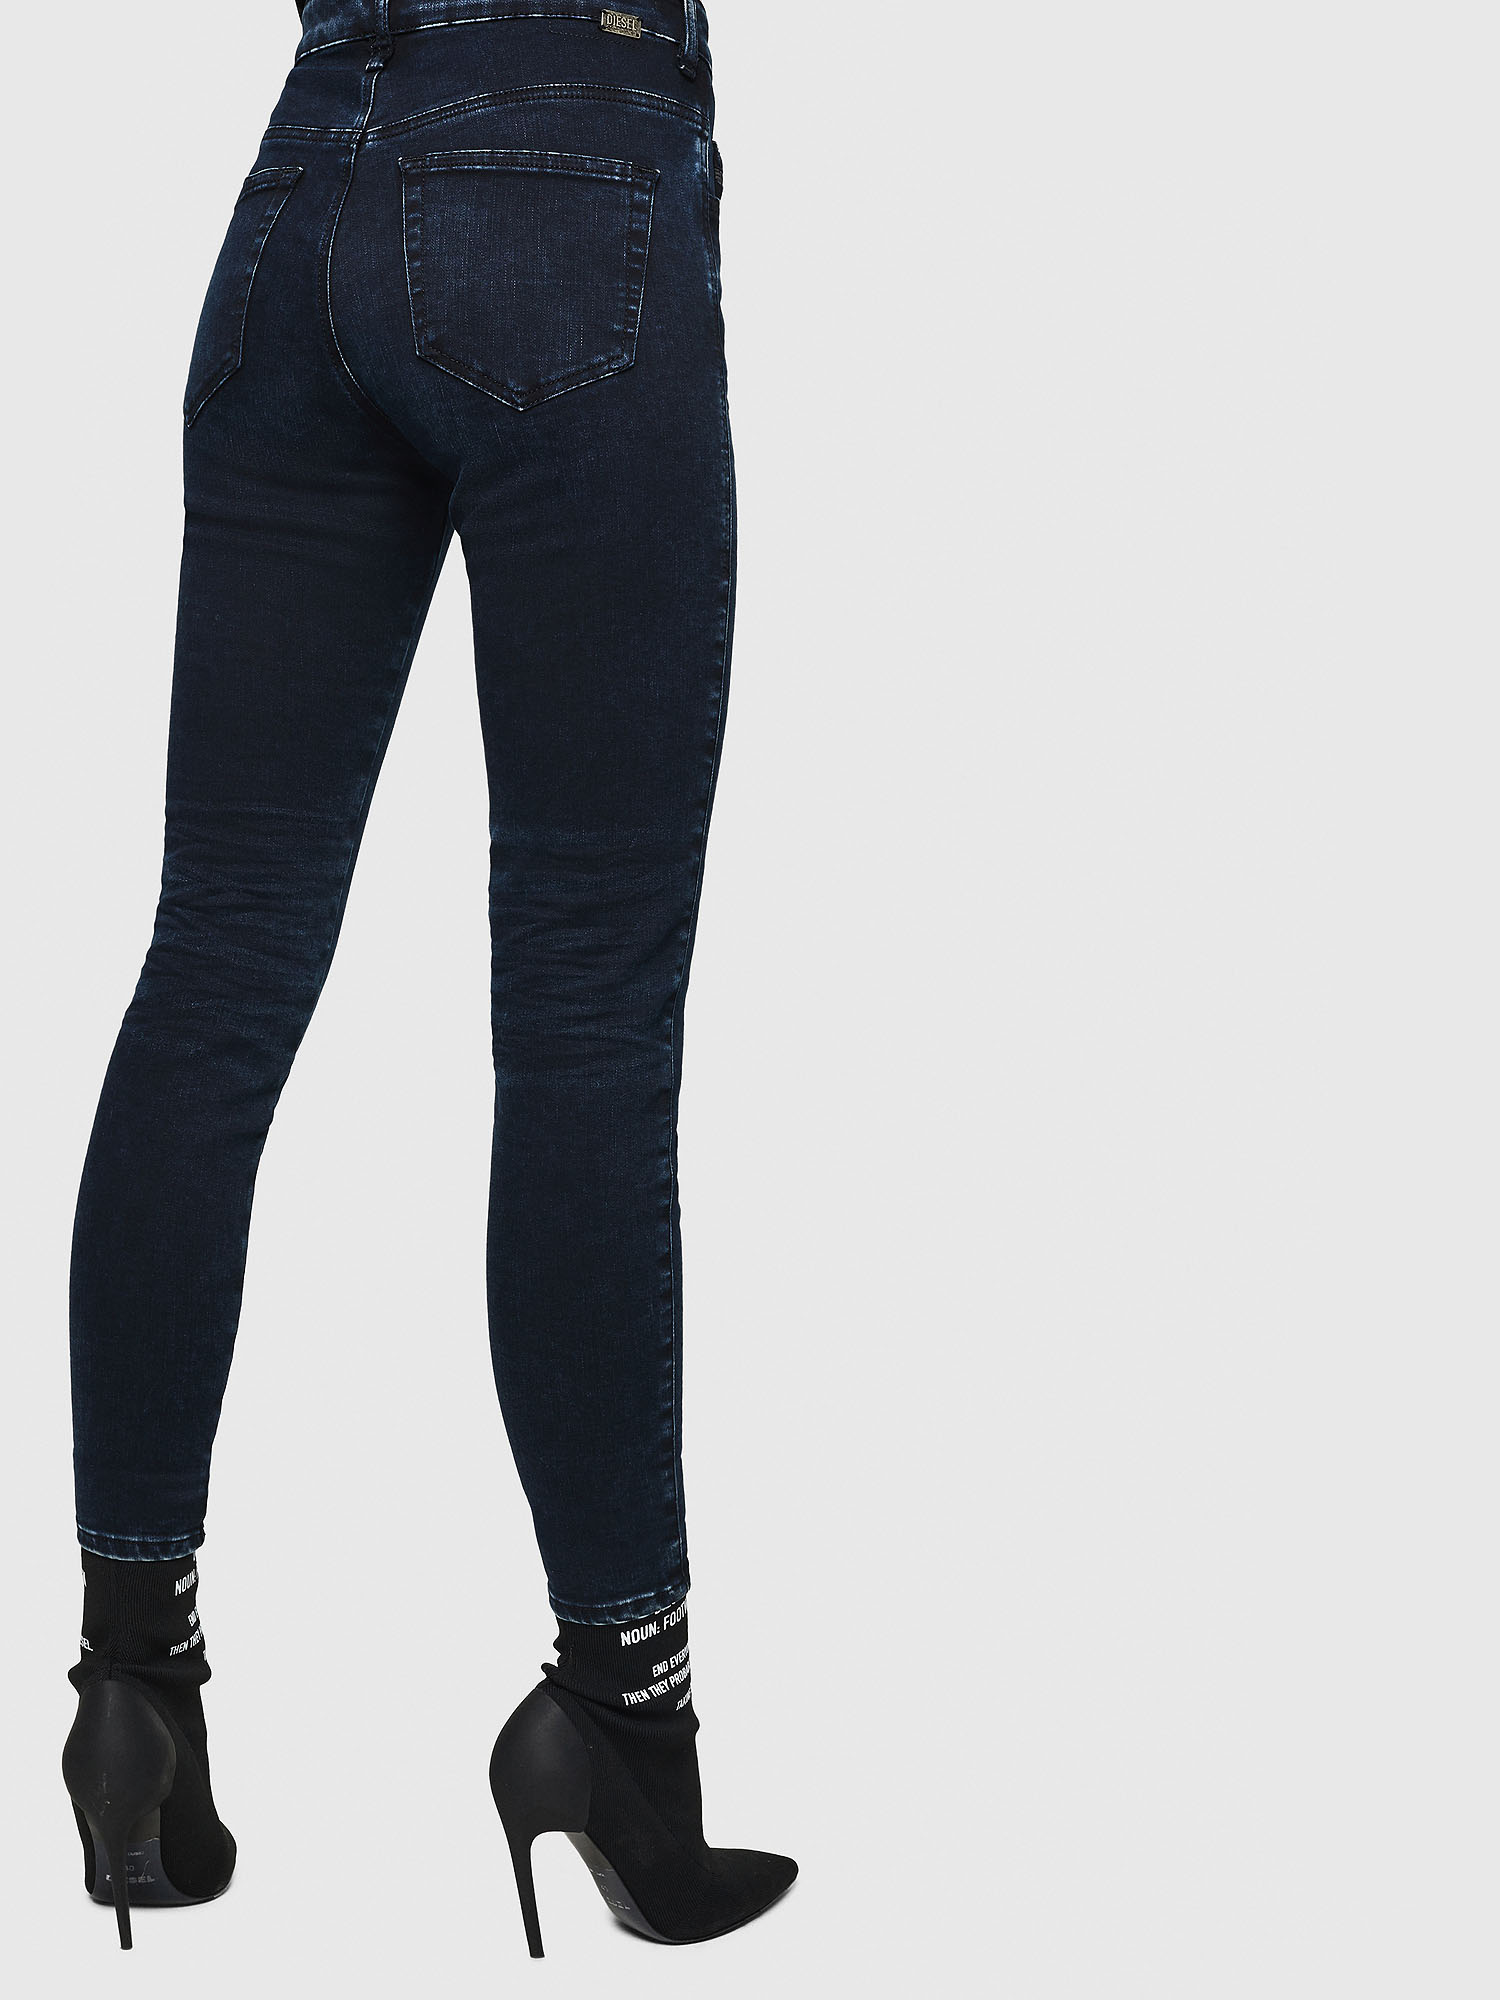 Diesel - Slandy High 082AU,  - Jeans - Image 2